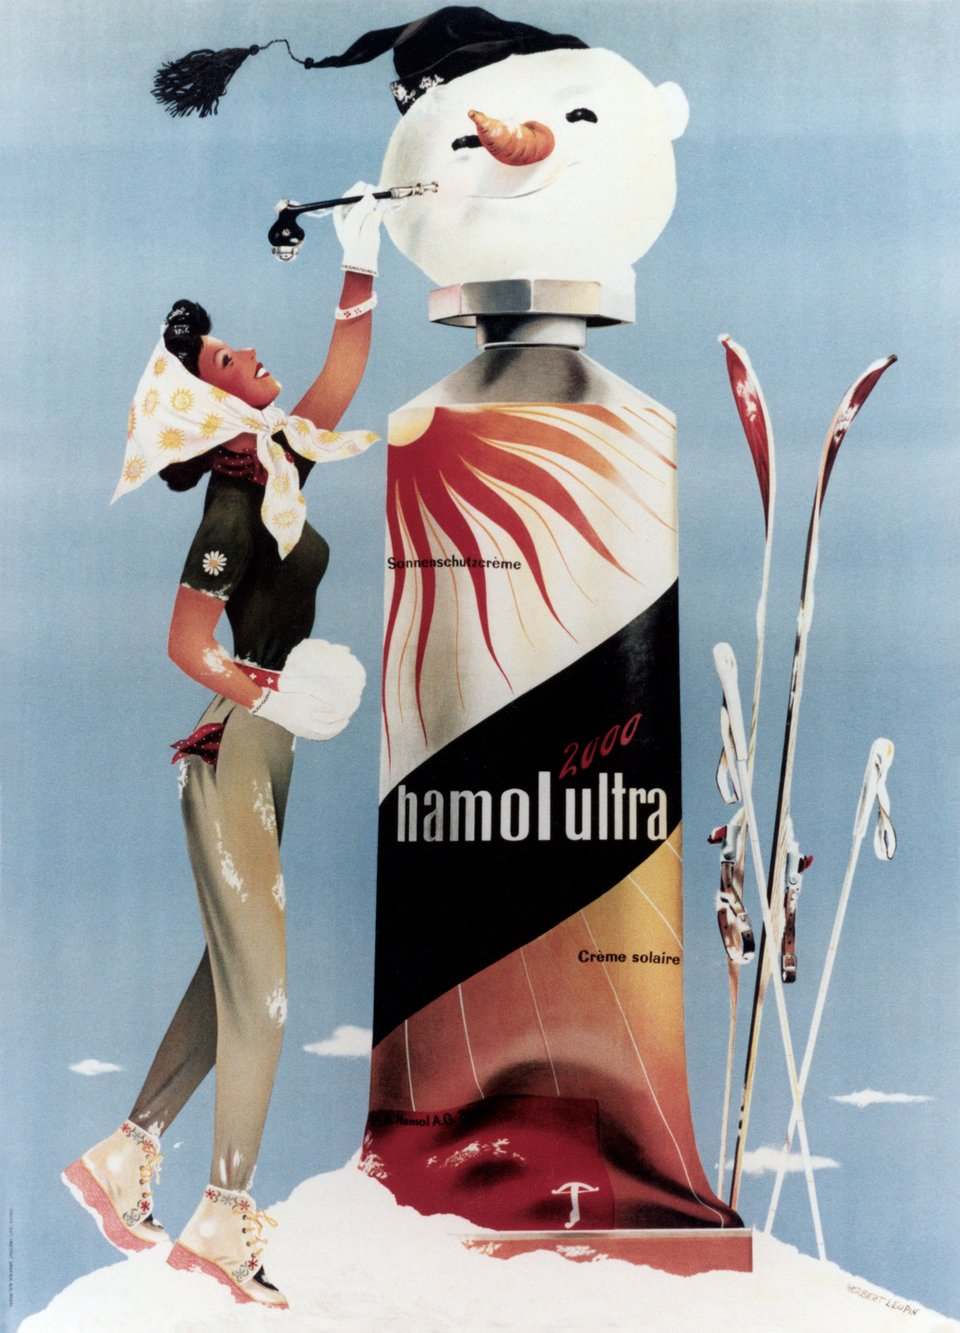 Hamol Ultra 2000, crème solaire – Vintage poster – Herbert LEUPIN – 1941